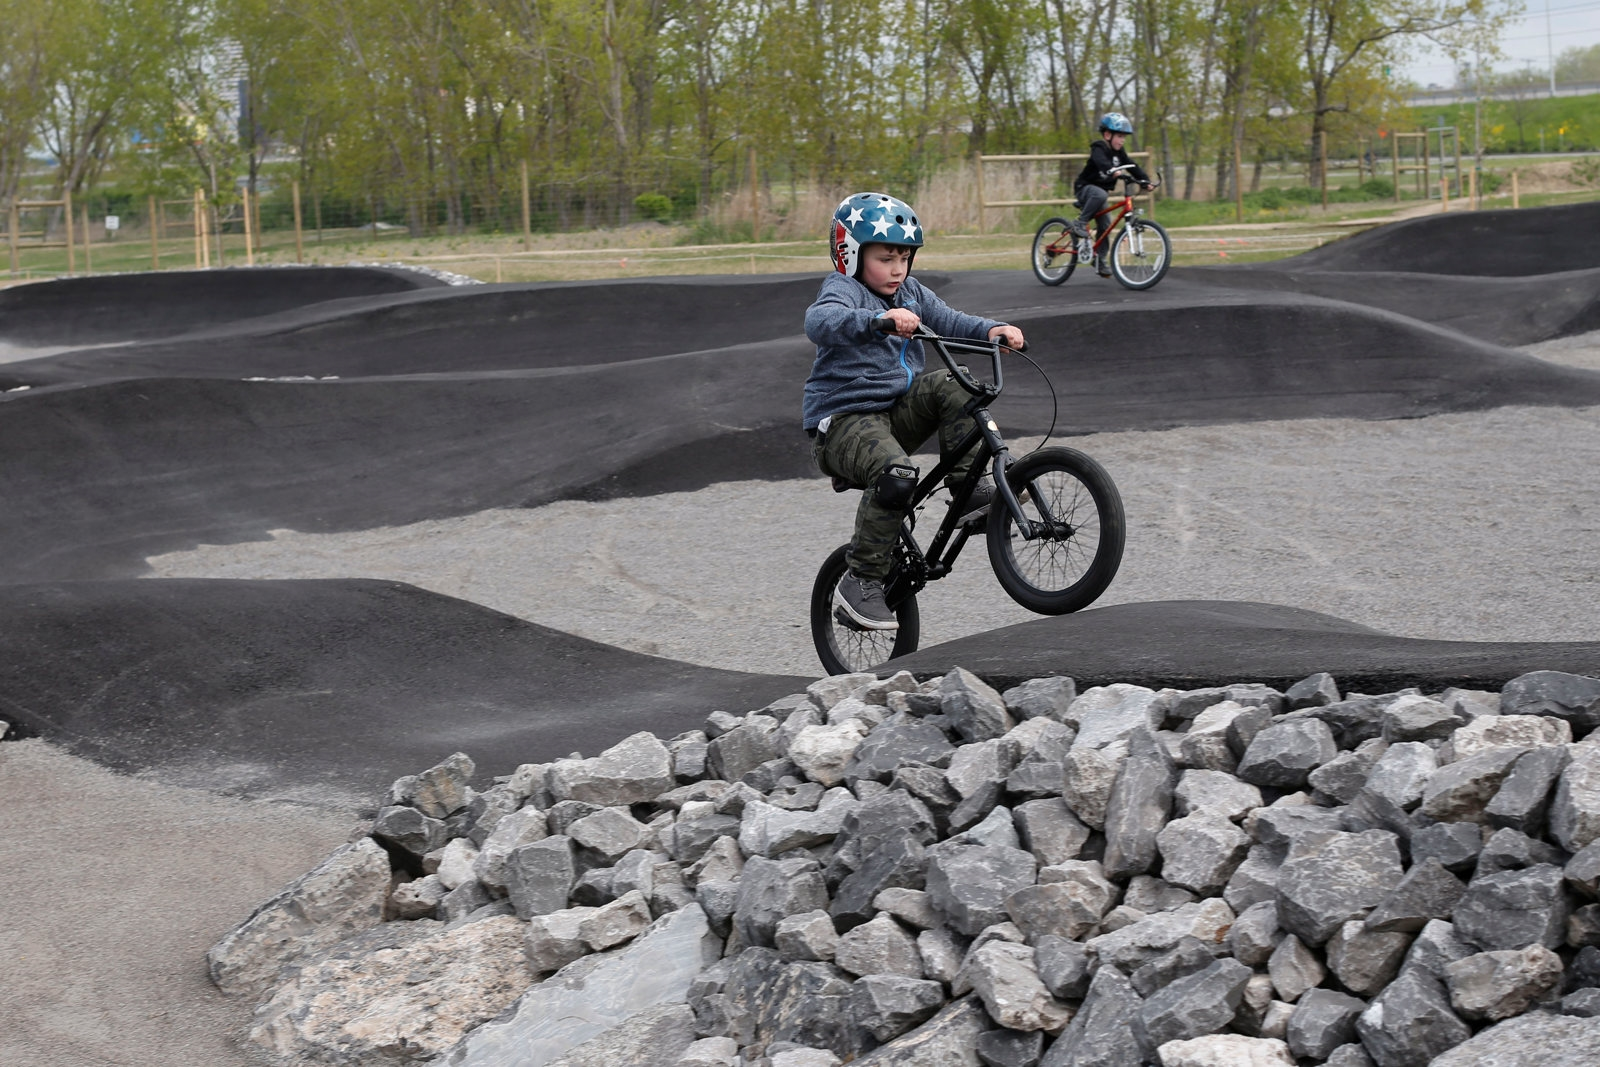 Cyclists are already hitting the trails as officials planned to cut the ribbon for the new lakeside bike park on the Outer Harbor on May 24.